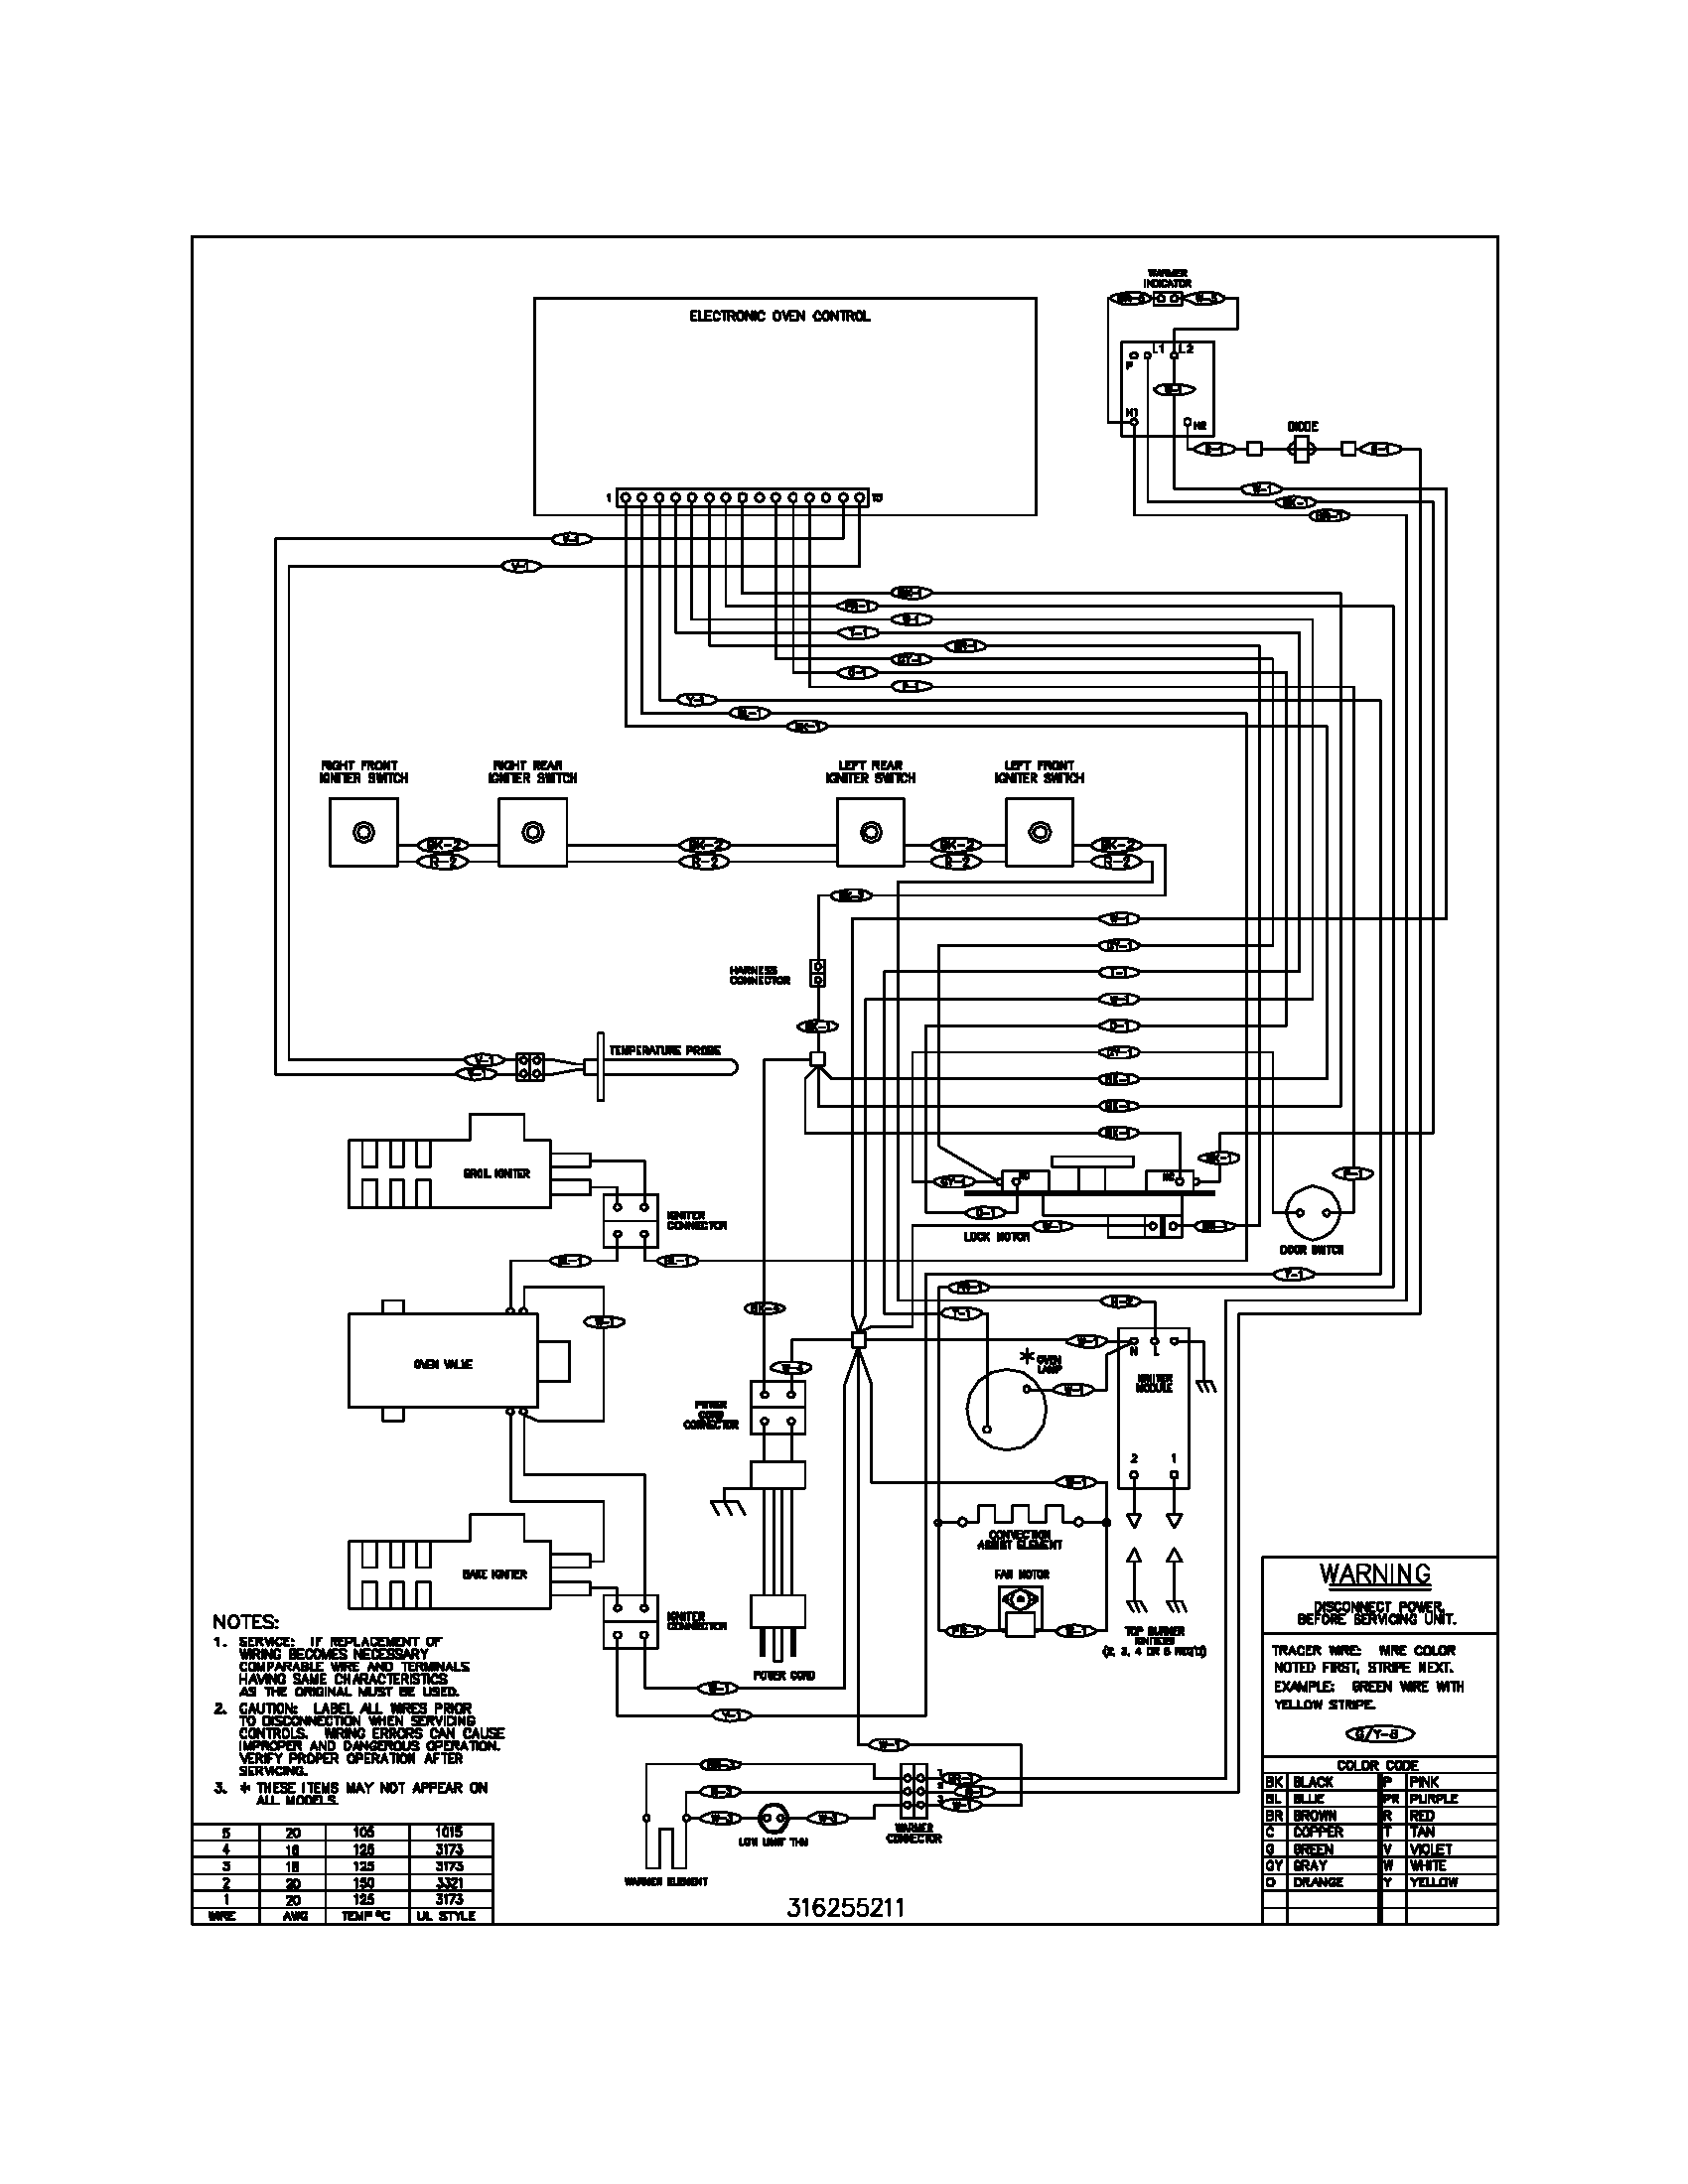 wiring diagram parts electrolux wiring diagram electrolux dishwasher service manual frigidaire dishwasher wiring diagram at honlapkeszites.co